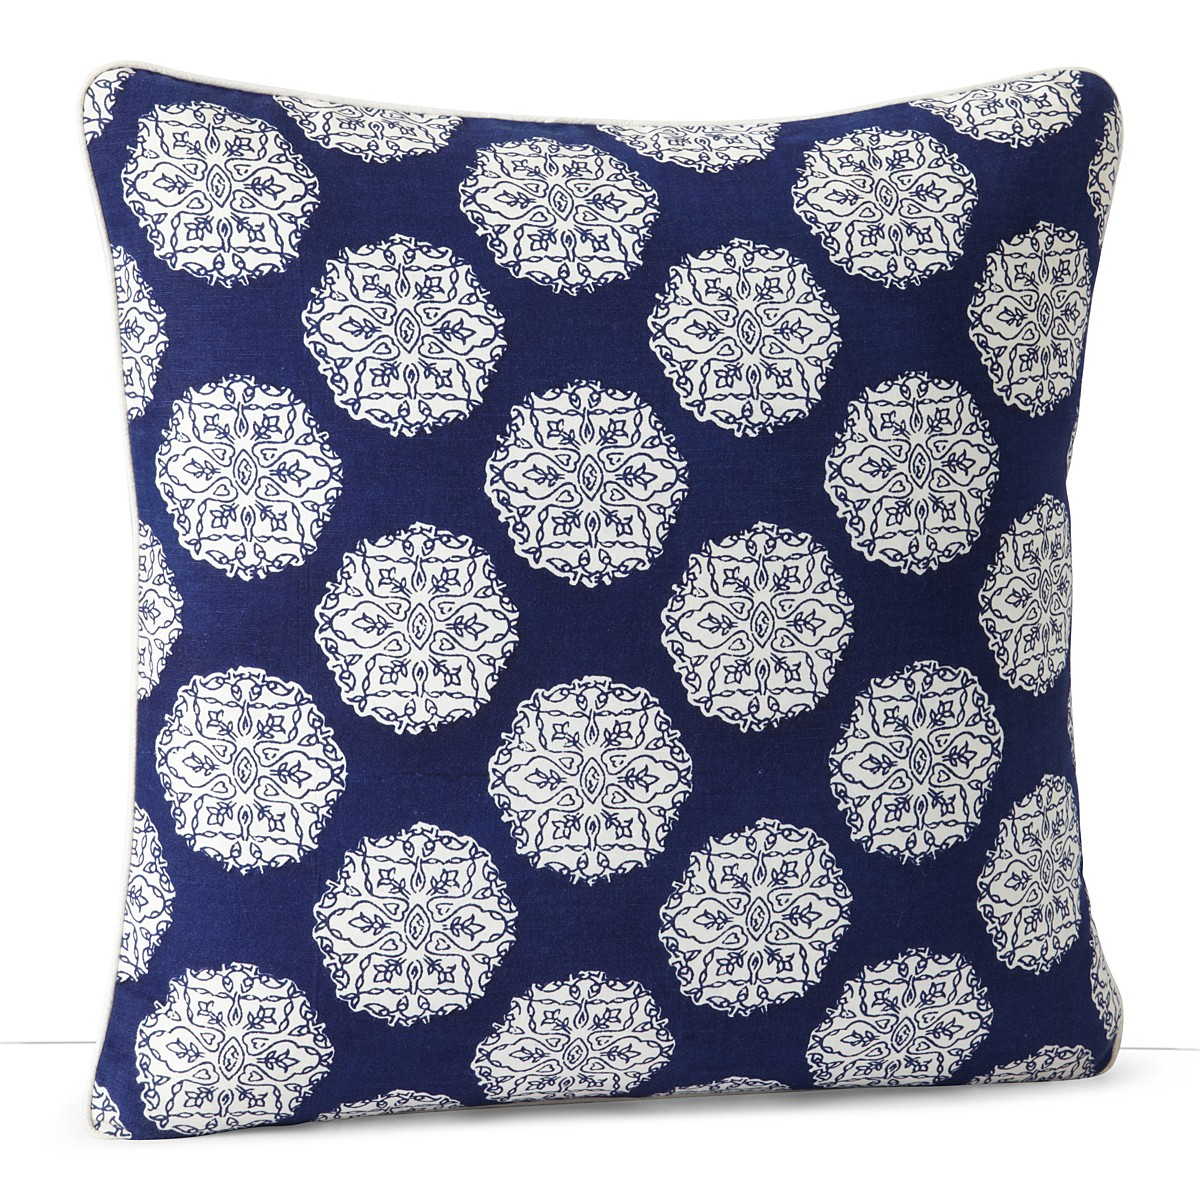 Amusing John Robshaw Pillows for Living Room Accessories Ideas: John Robshaw Pillows | John Robshaw Sheets | Pillow Shams Wiki